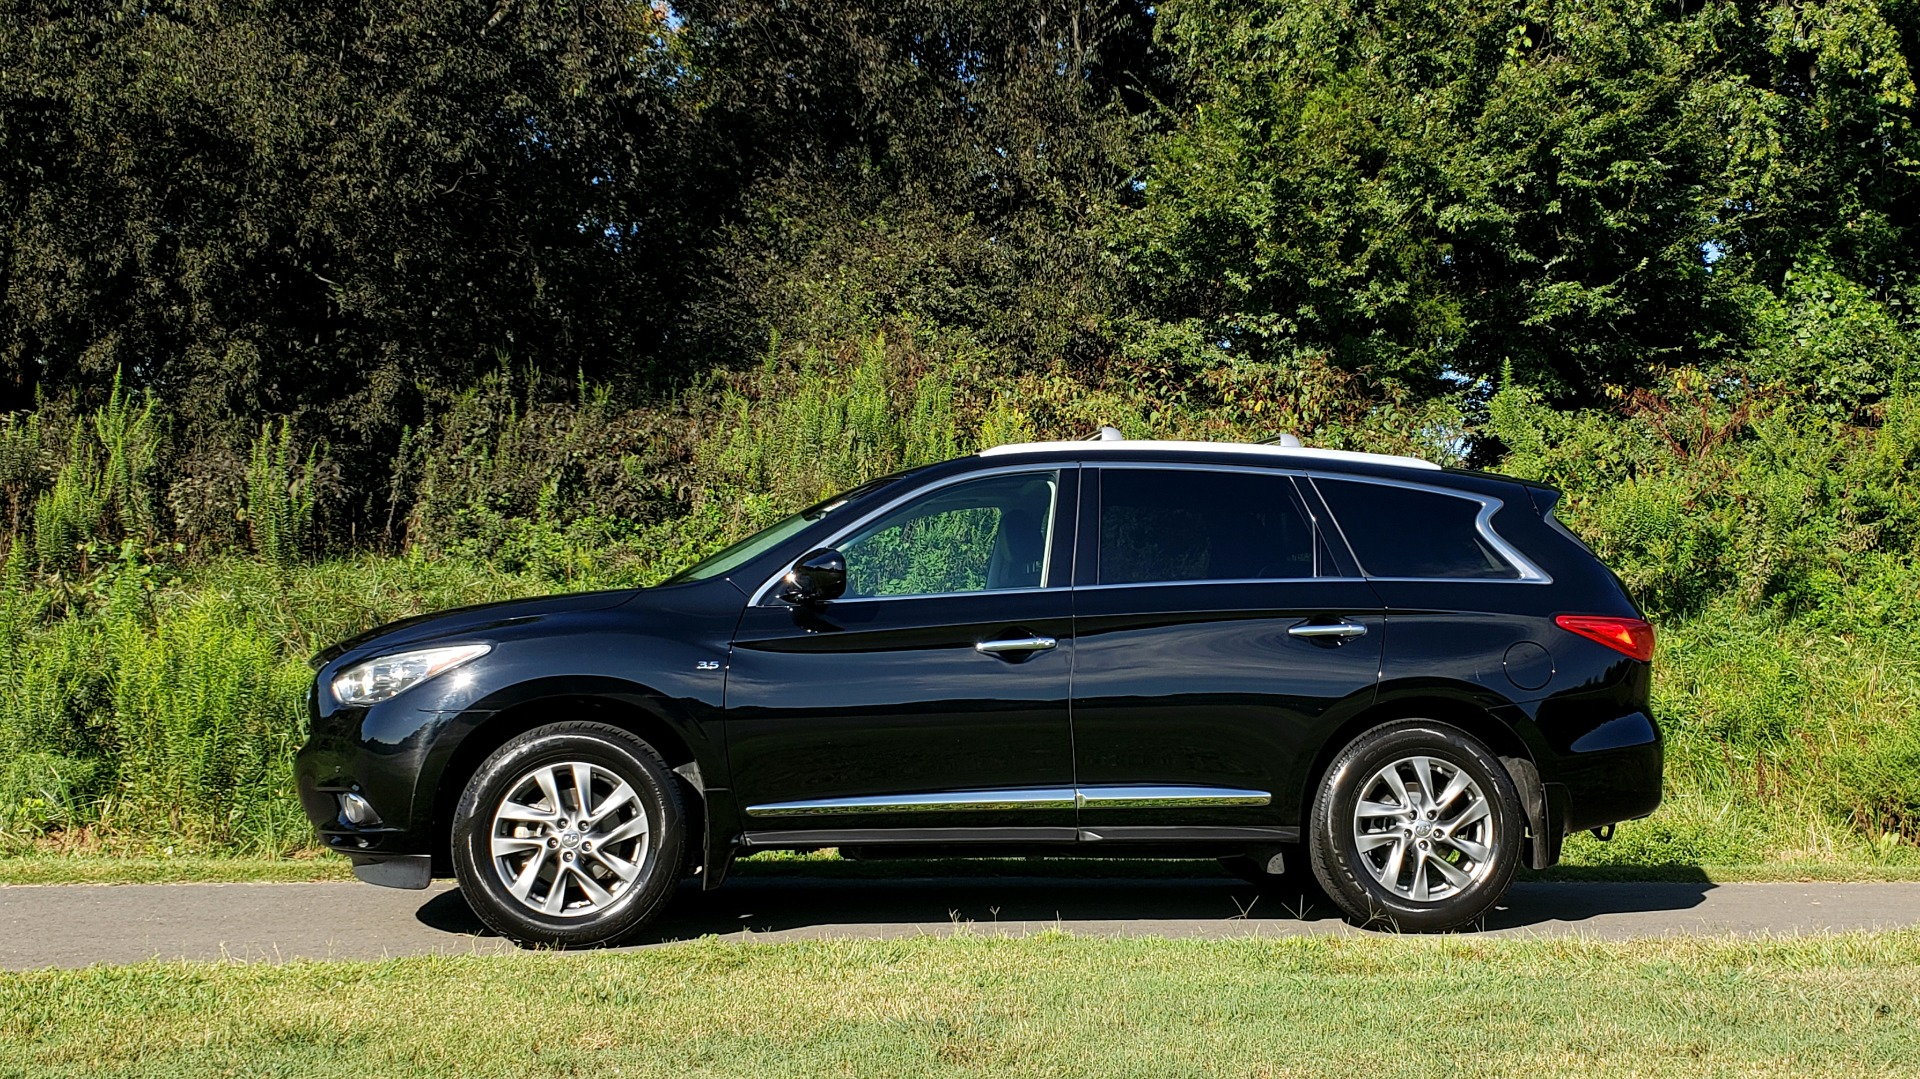 Used 2015 INFINITI QX60 AWD / PREM PLUS PKG / NAV / SUNROOF / BOSE / 3-ROW / REARVIEW for sale $19,695 at Formula Imports in Charlotte NC 28227 6